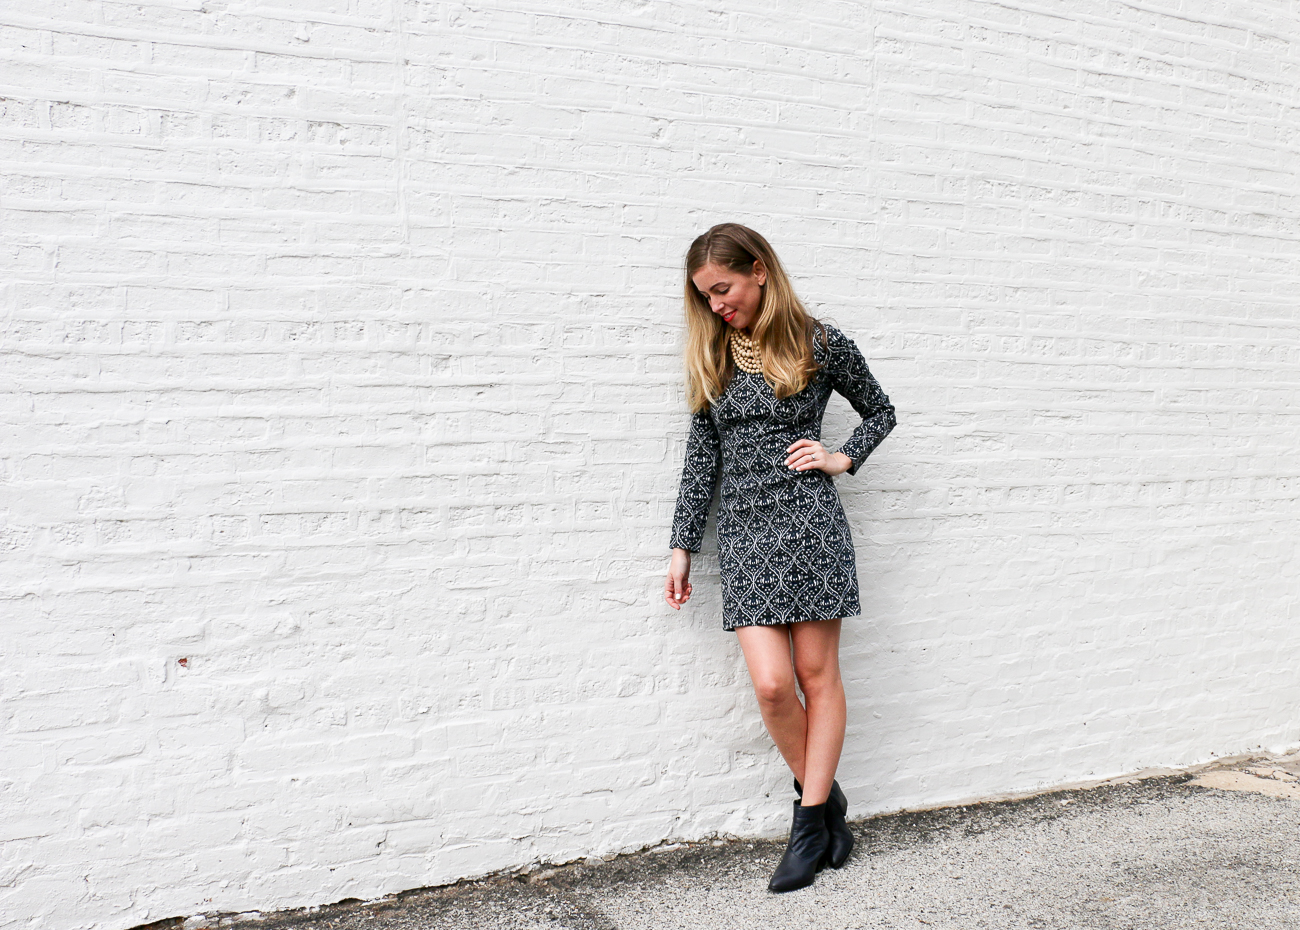 Blue pattern dress, white wall